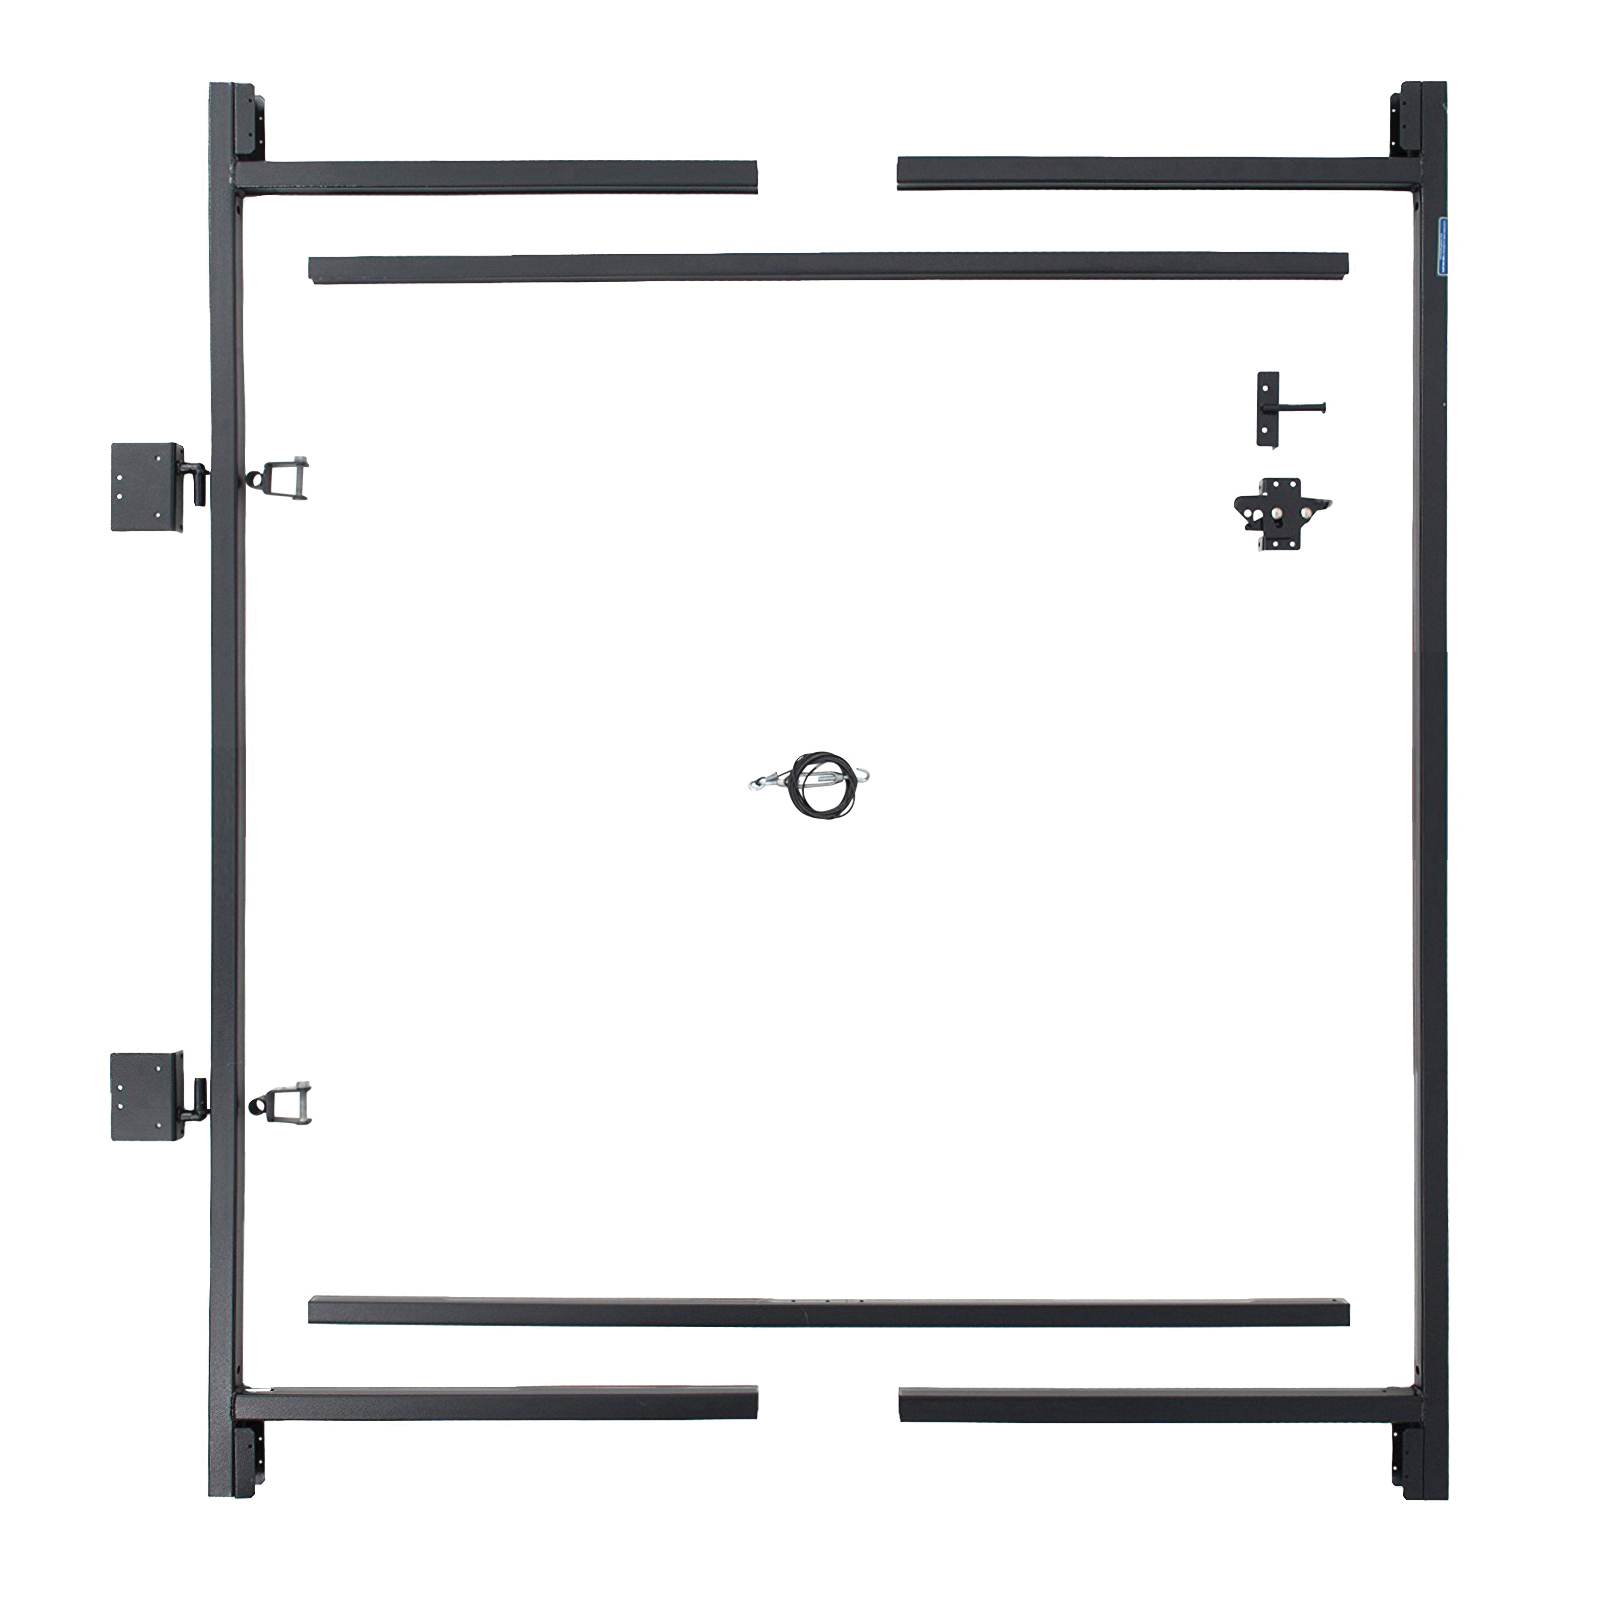 Picture of Adjust-A-Gate AG36 Gate Frame, Steel, Powder-Coated